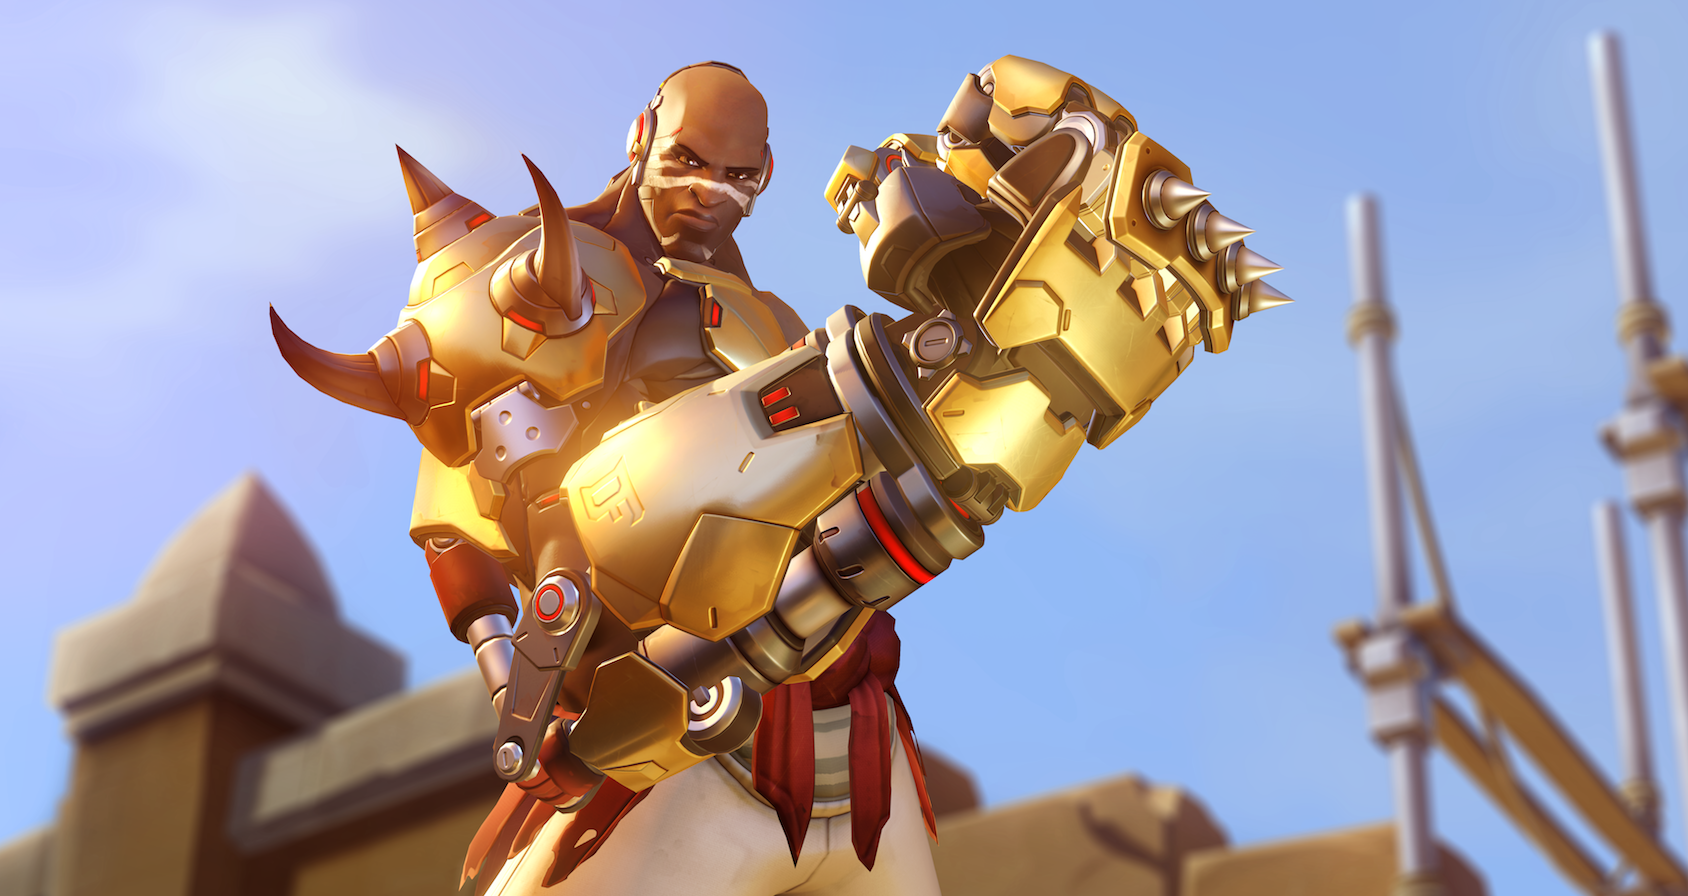 New Overwatch Blog Post From Blizzard Teases Doomfist